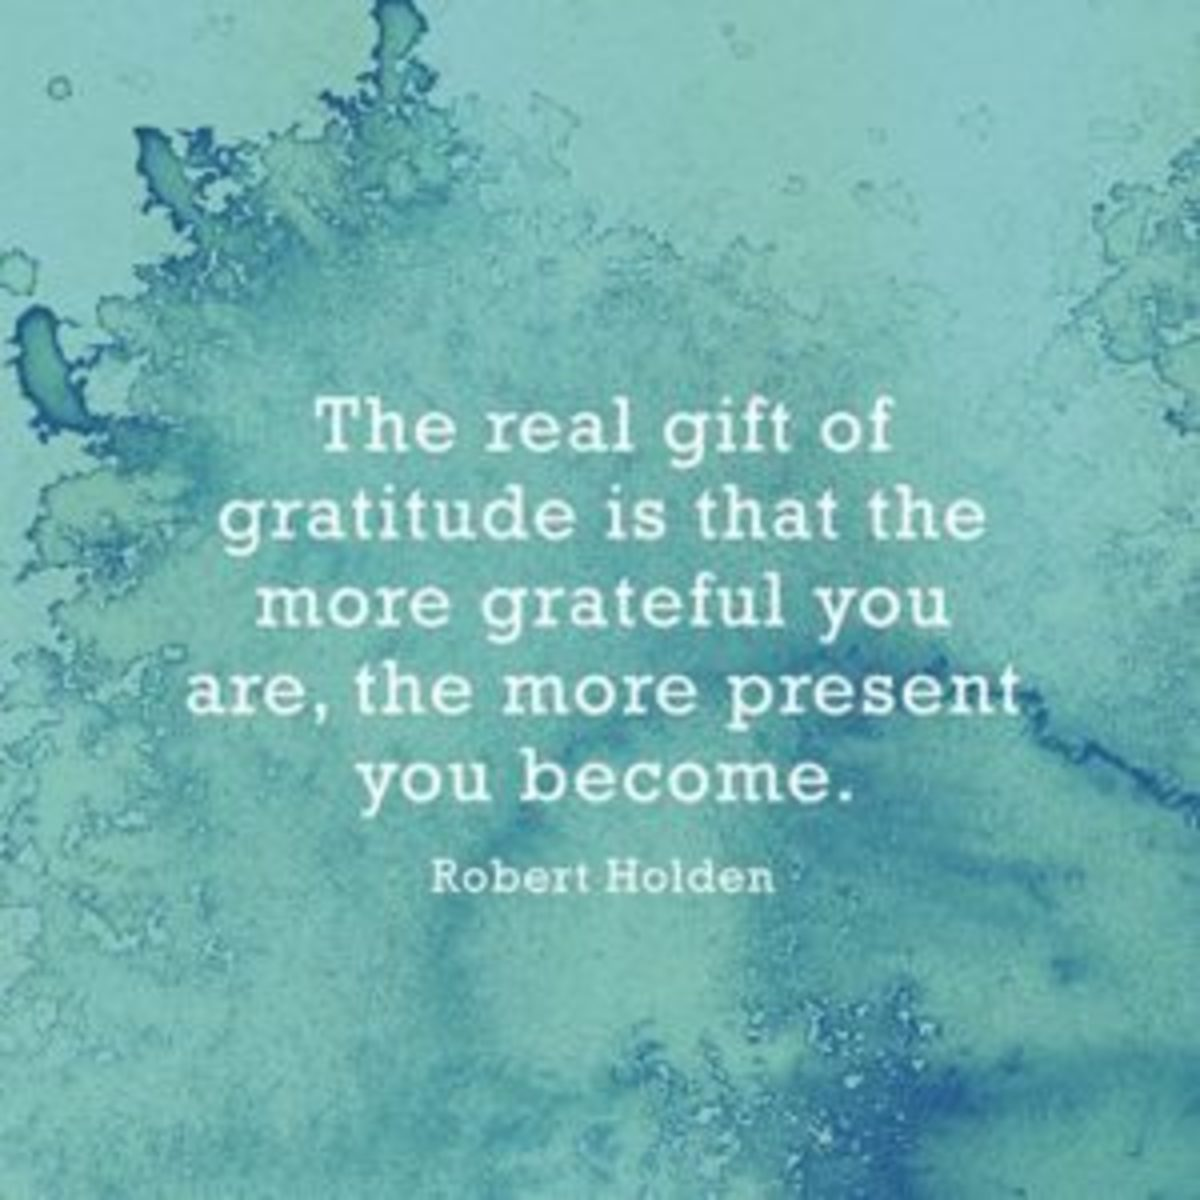 body-gratitude-holden-quote